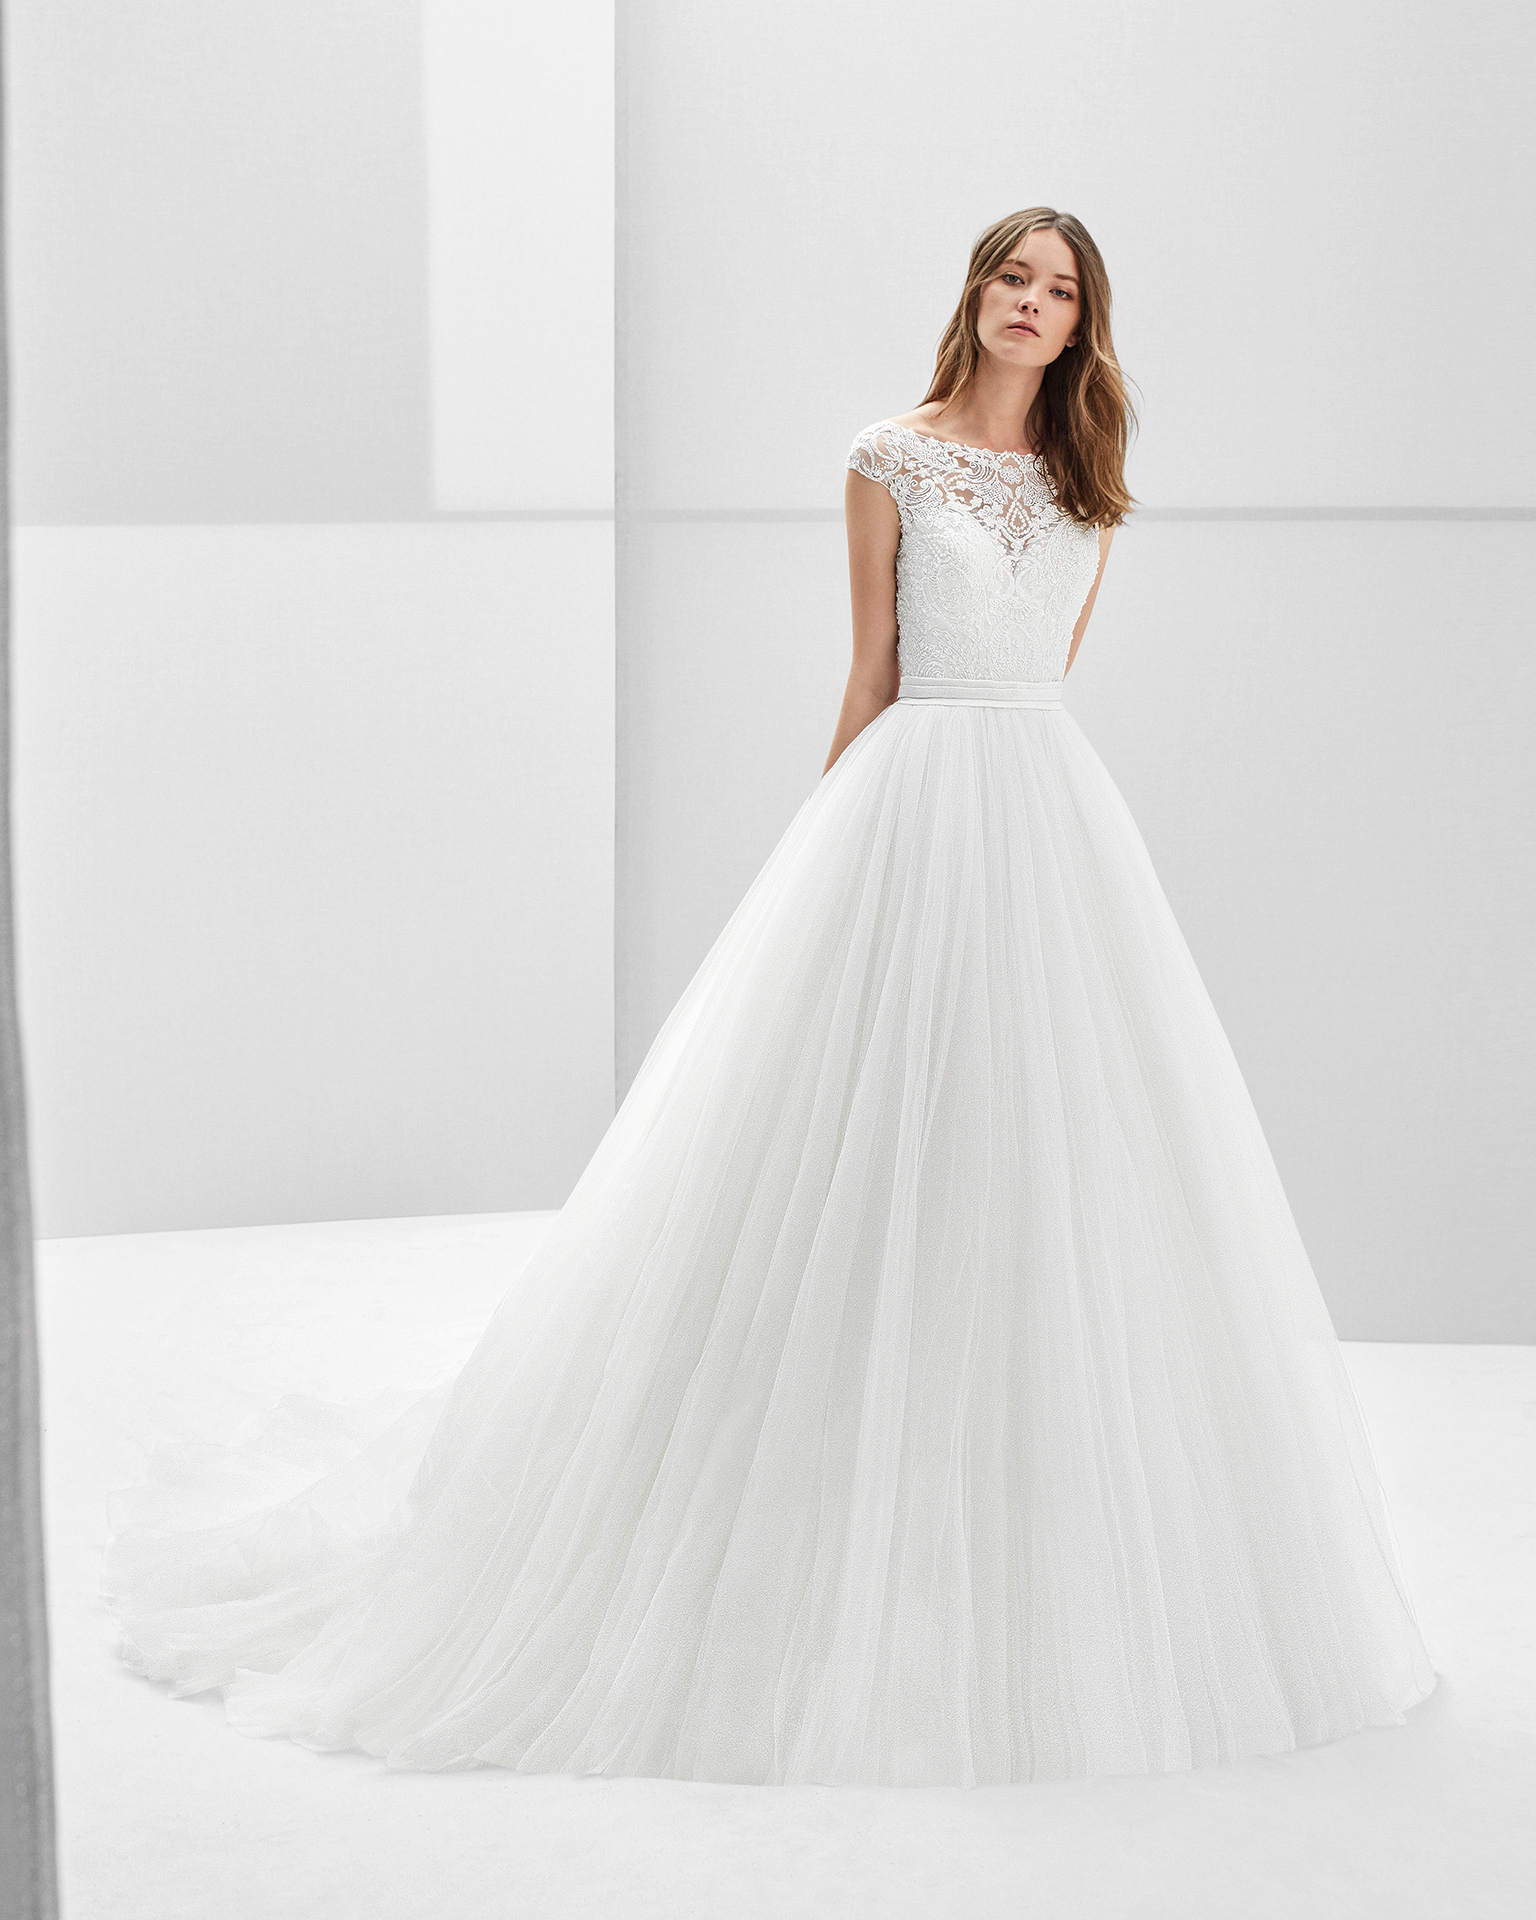 Princess-style beaded lace and tulle wedding dress with short sleeves and low back.